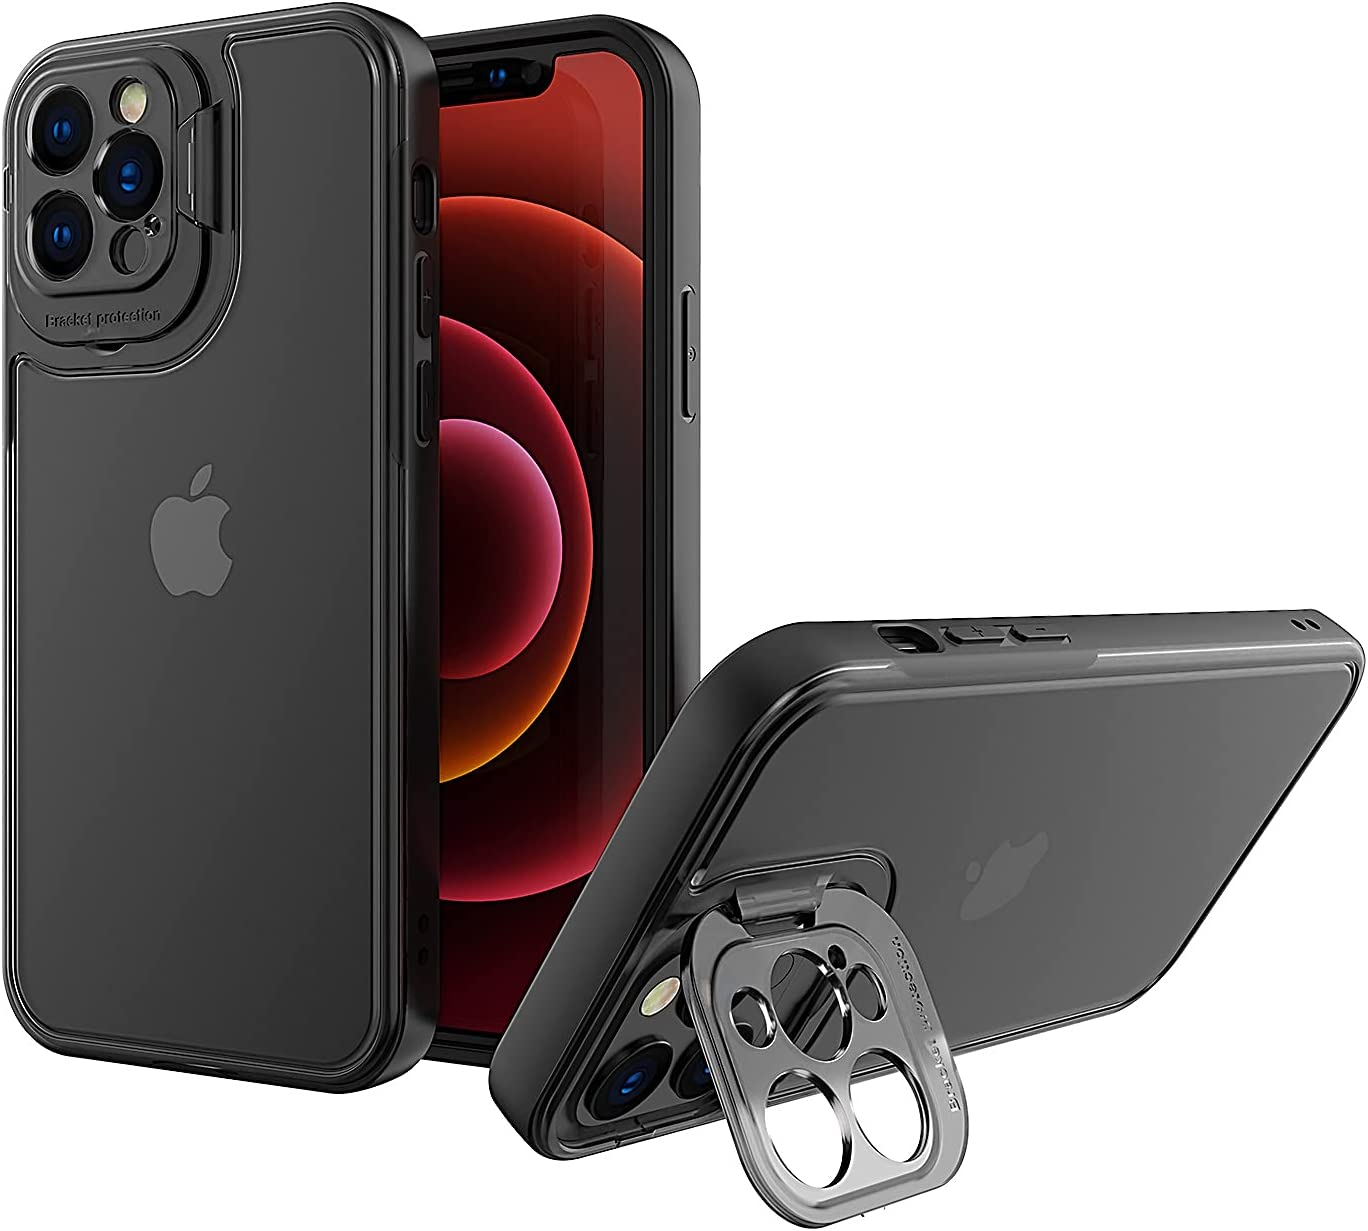 TPU PC Cover Transparent Camera Lens Kickstand Phone Case Compatible with iPhone 13 Pro Max 2021 6.7 inch [Upgraded Materials] [Drop Protective] Hard PC Back with Flexible TPU Bumper (Black)